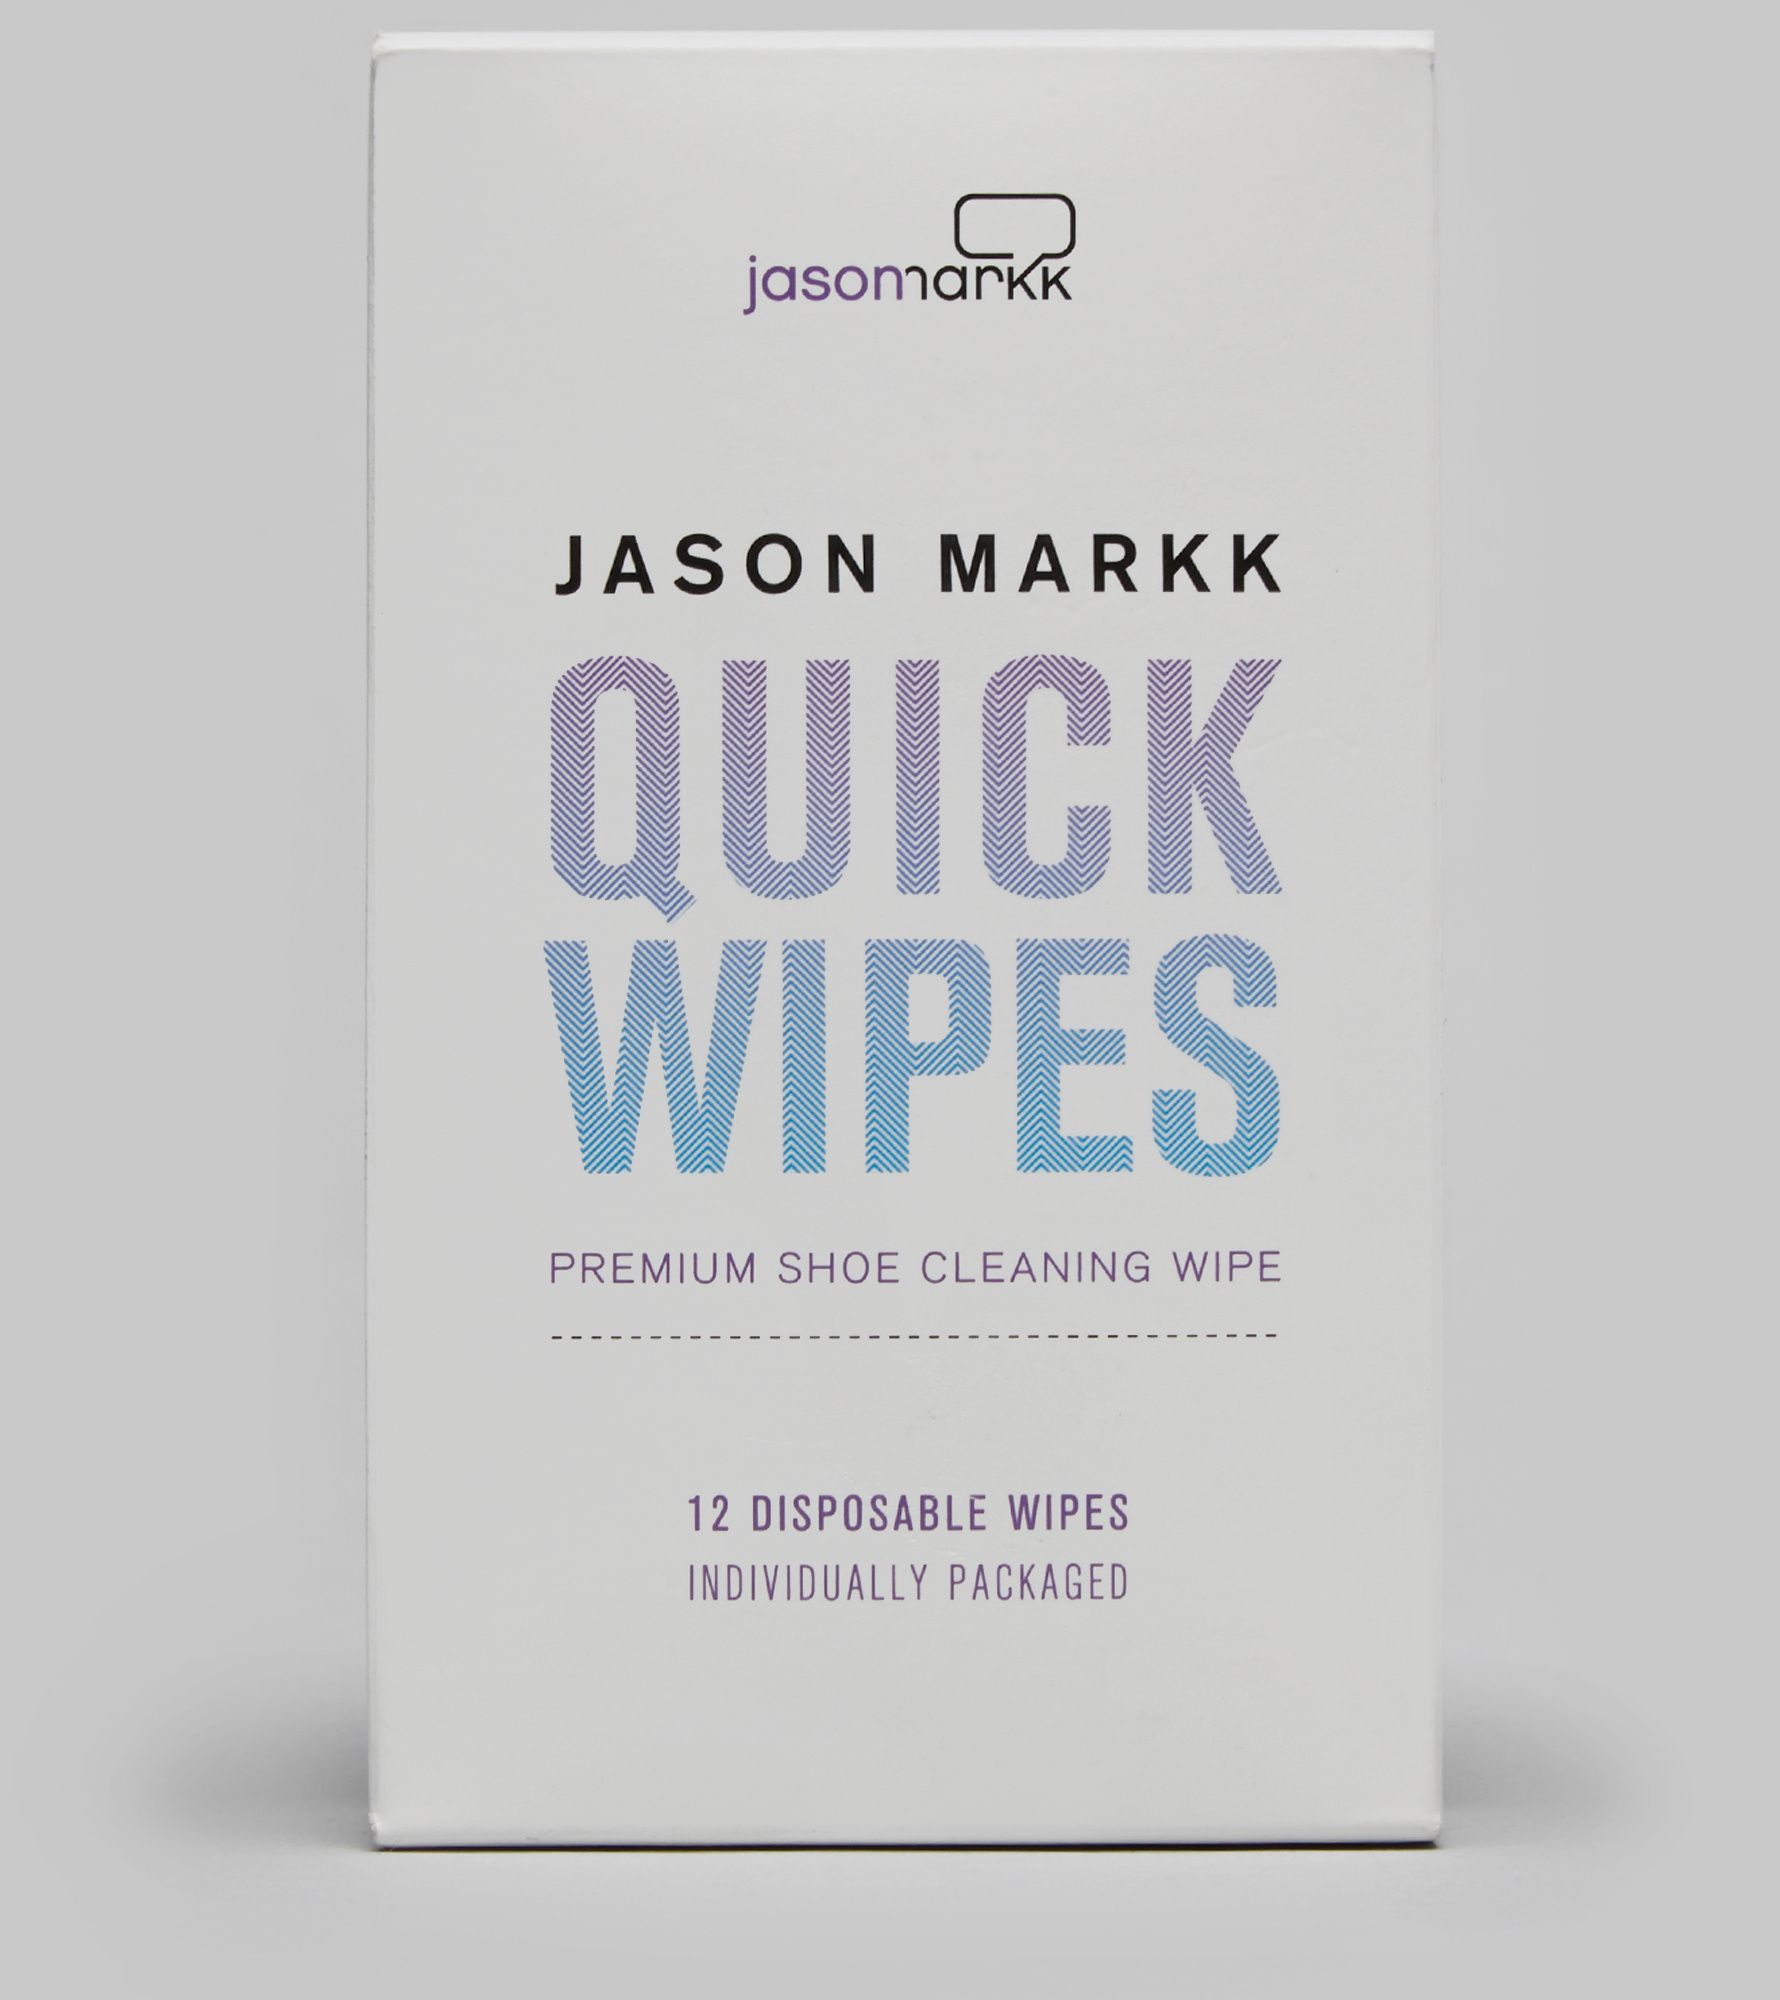 Jason markk coupon code